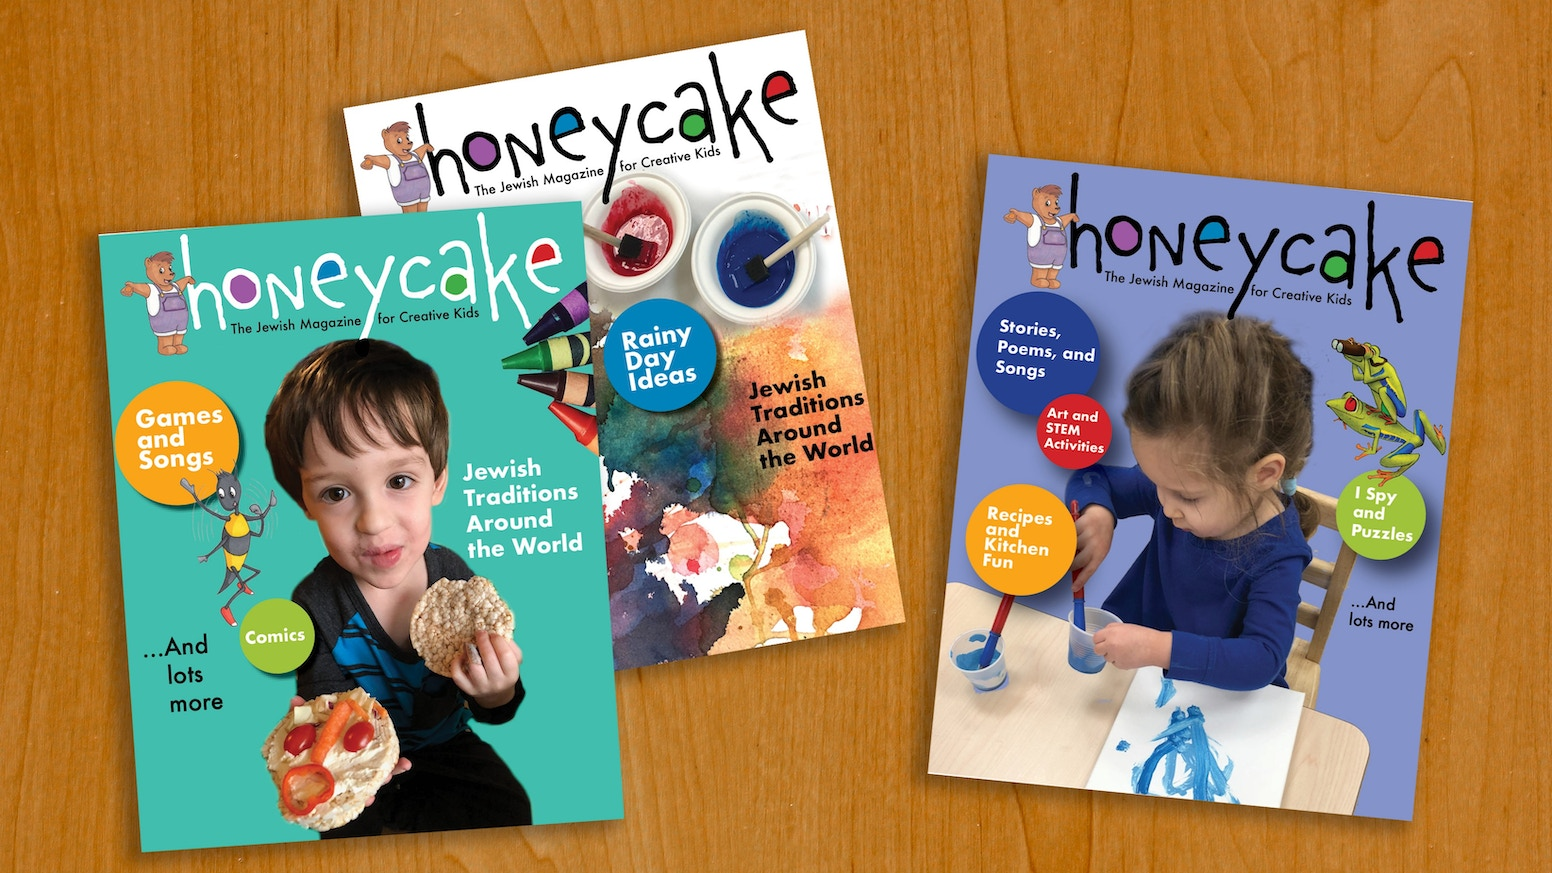 Honeycake is the Jewish magazine for two- to six-year-olds. We print stories and activities that help kids explore Jewish ideas. Miss the campaign? Not to worry -- you can still order Honeycake magazine through our website.